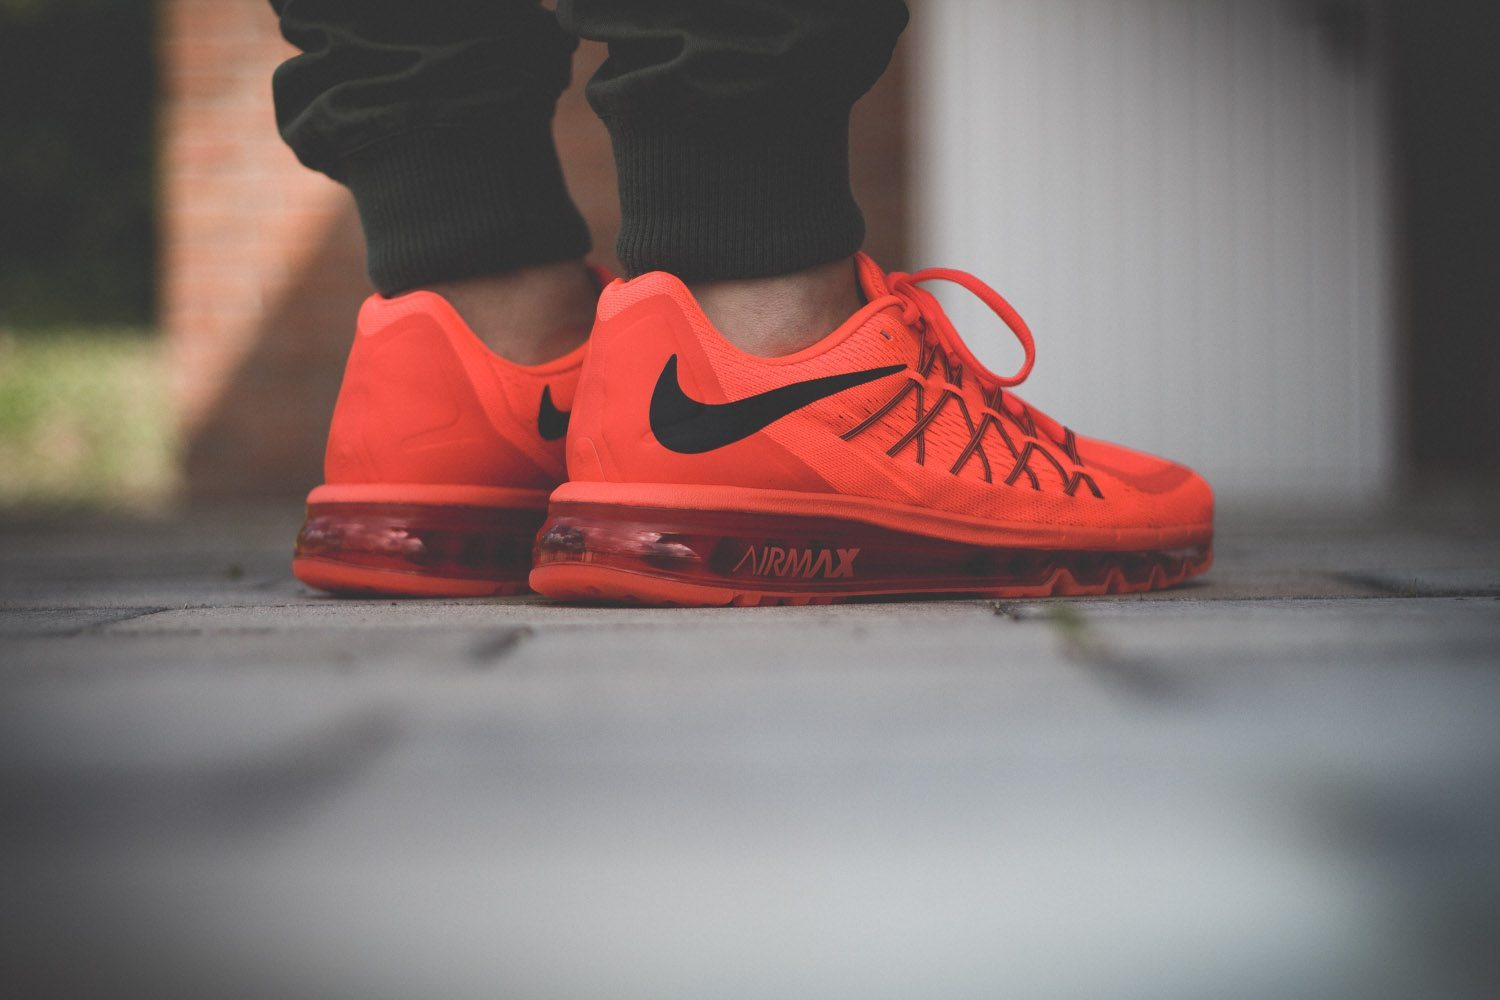 Nike Air Max 2015 Crimson Red